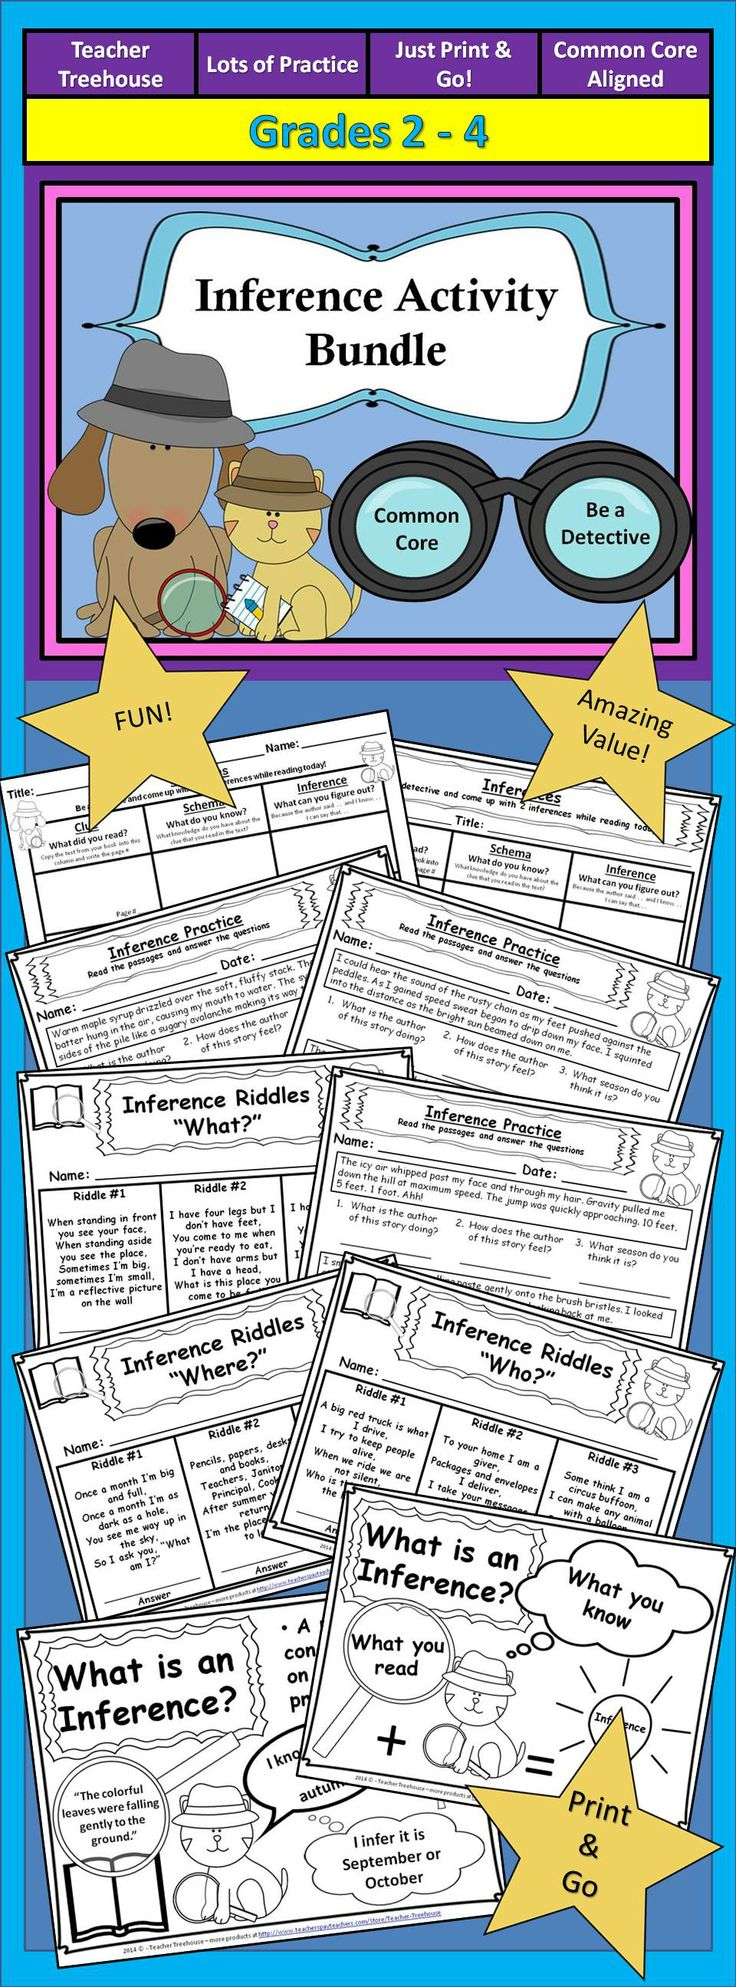 Worksheets Inferences Worksheet 2 105 best inferences and prediction images on pinterest making inference activity bundle posters riddles worksheets graphic organizers